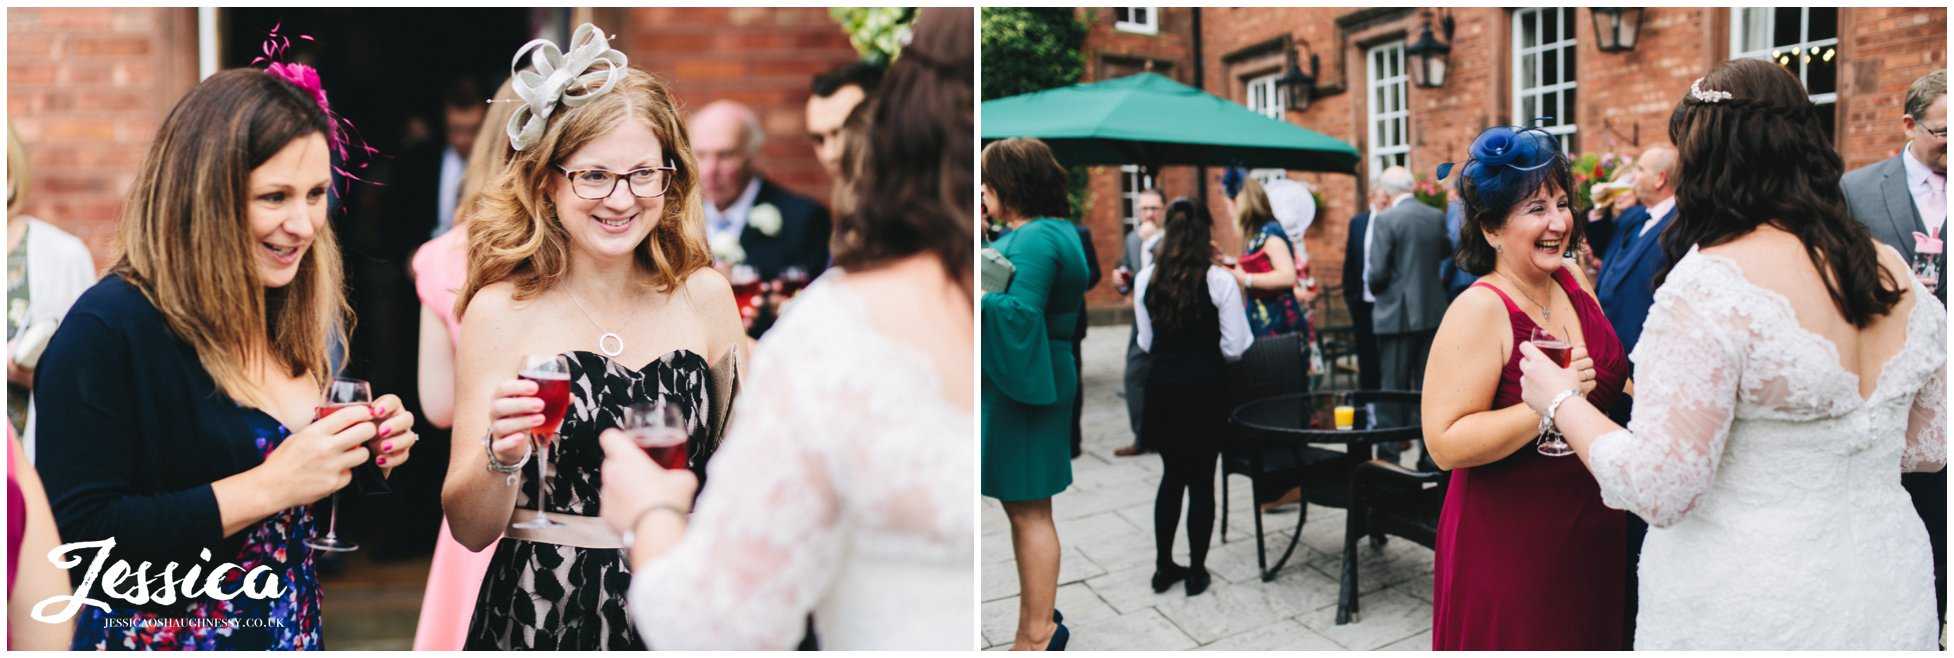 guests enjoy a champagne reception at nunsmere hall in cheshire